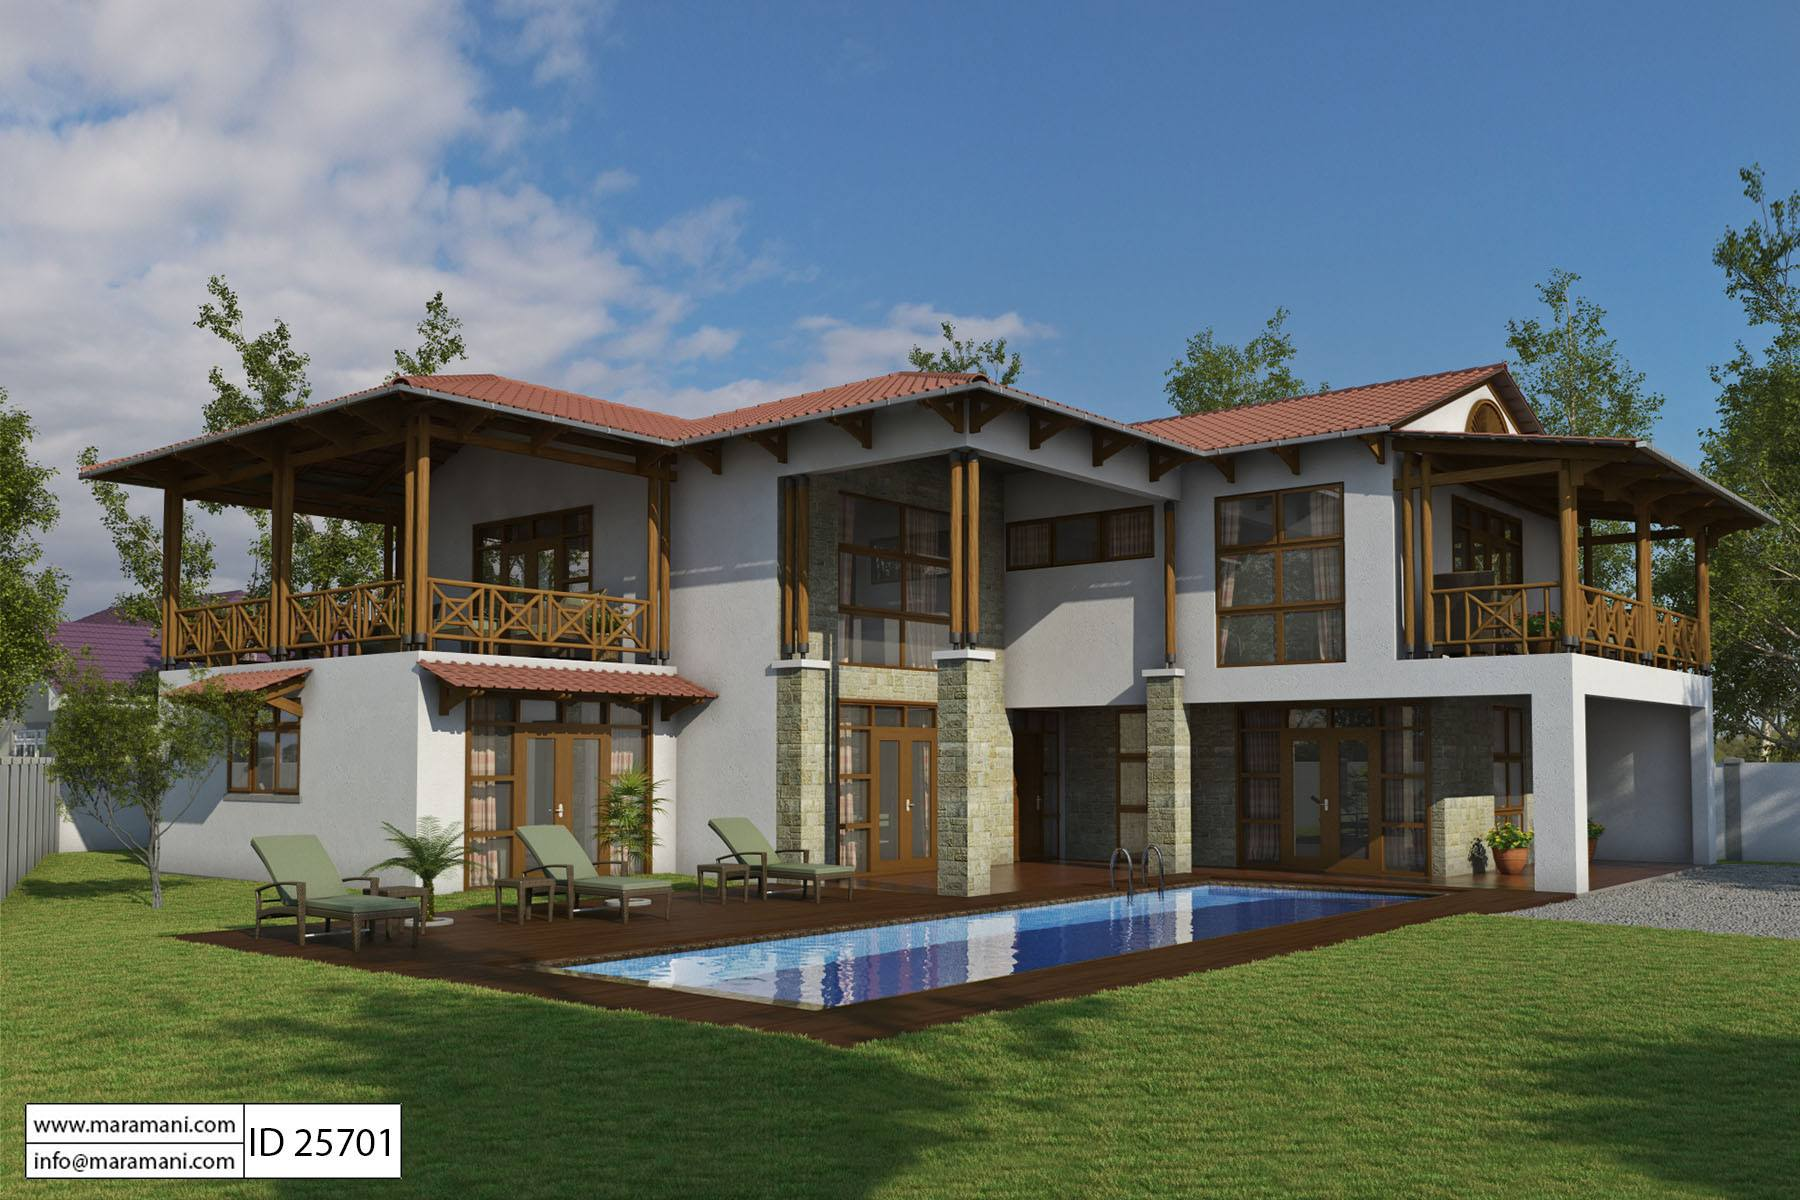 Bali style house with 5 bedrooms id 25701 house plans for 5 6 bedroom house plans